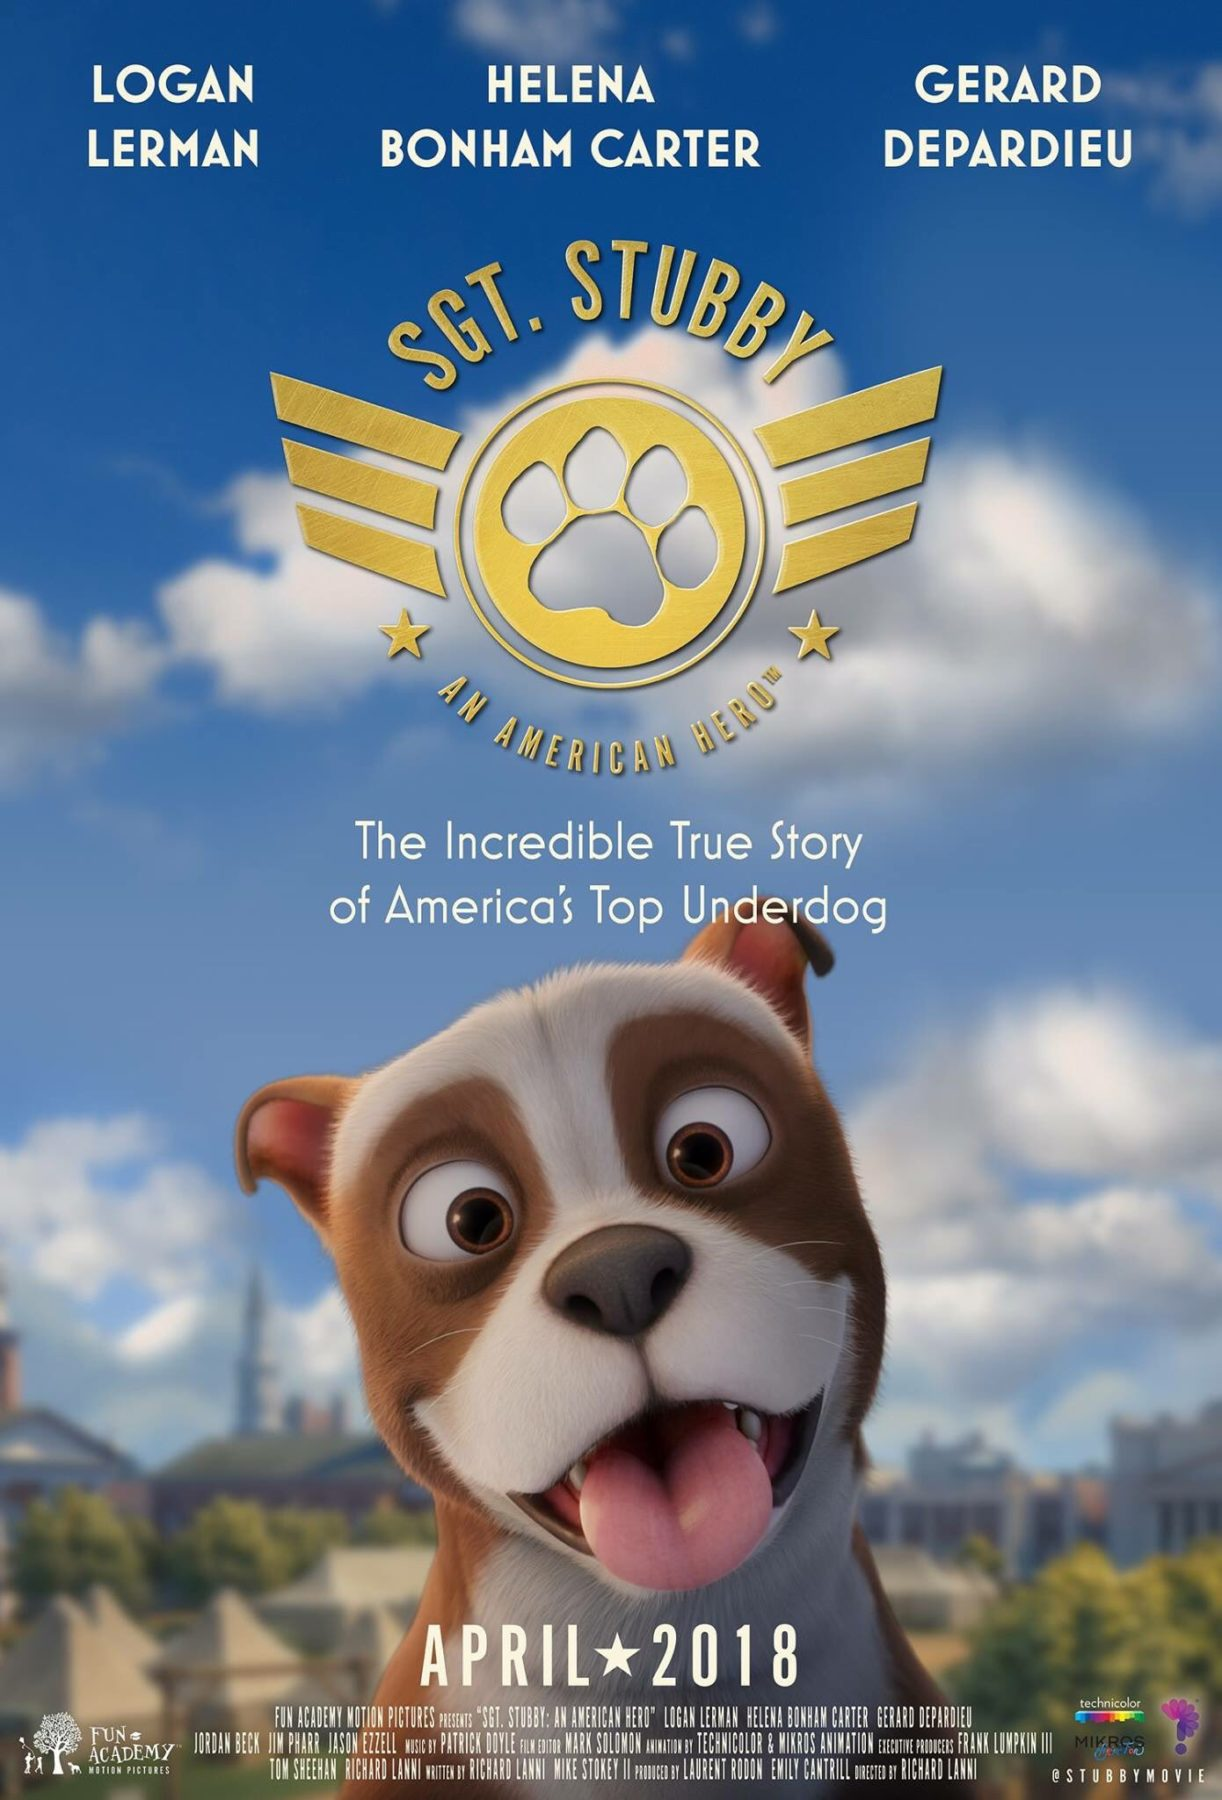 Poster and trailer for animated war film Sgt Stubby: An